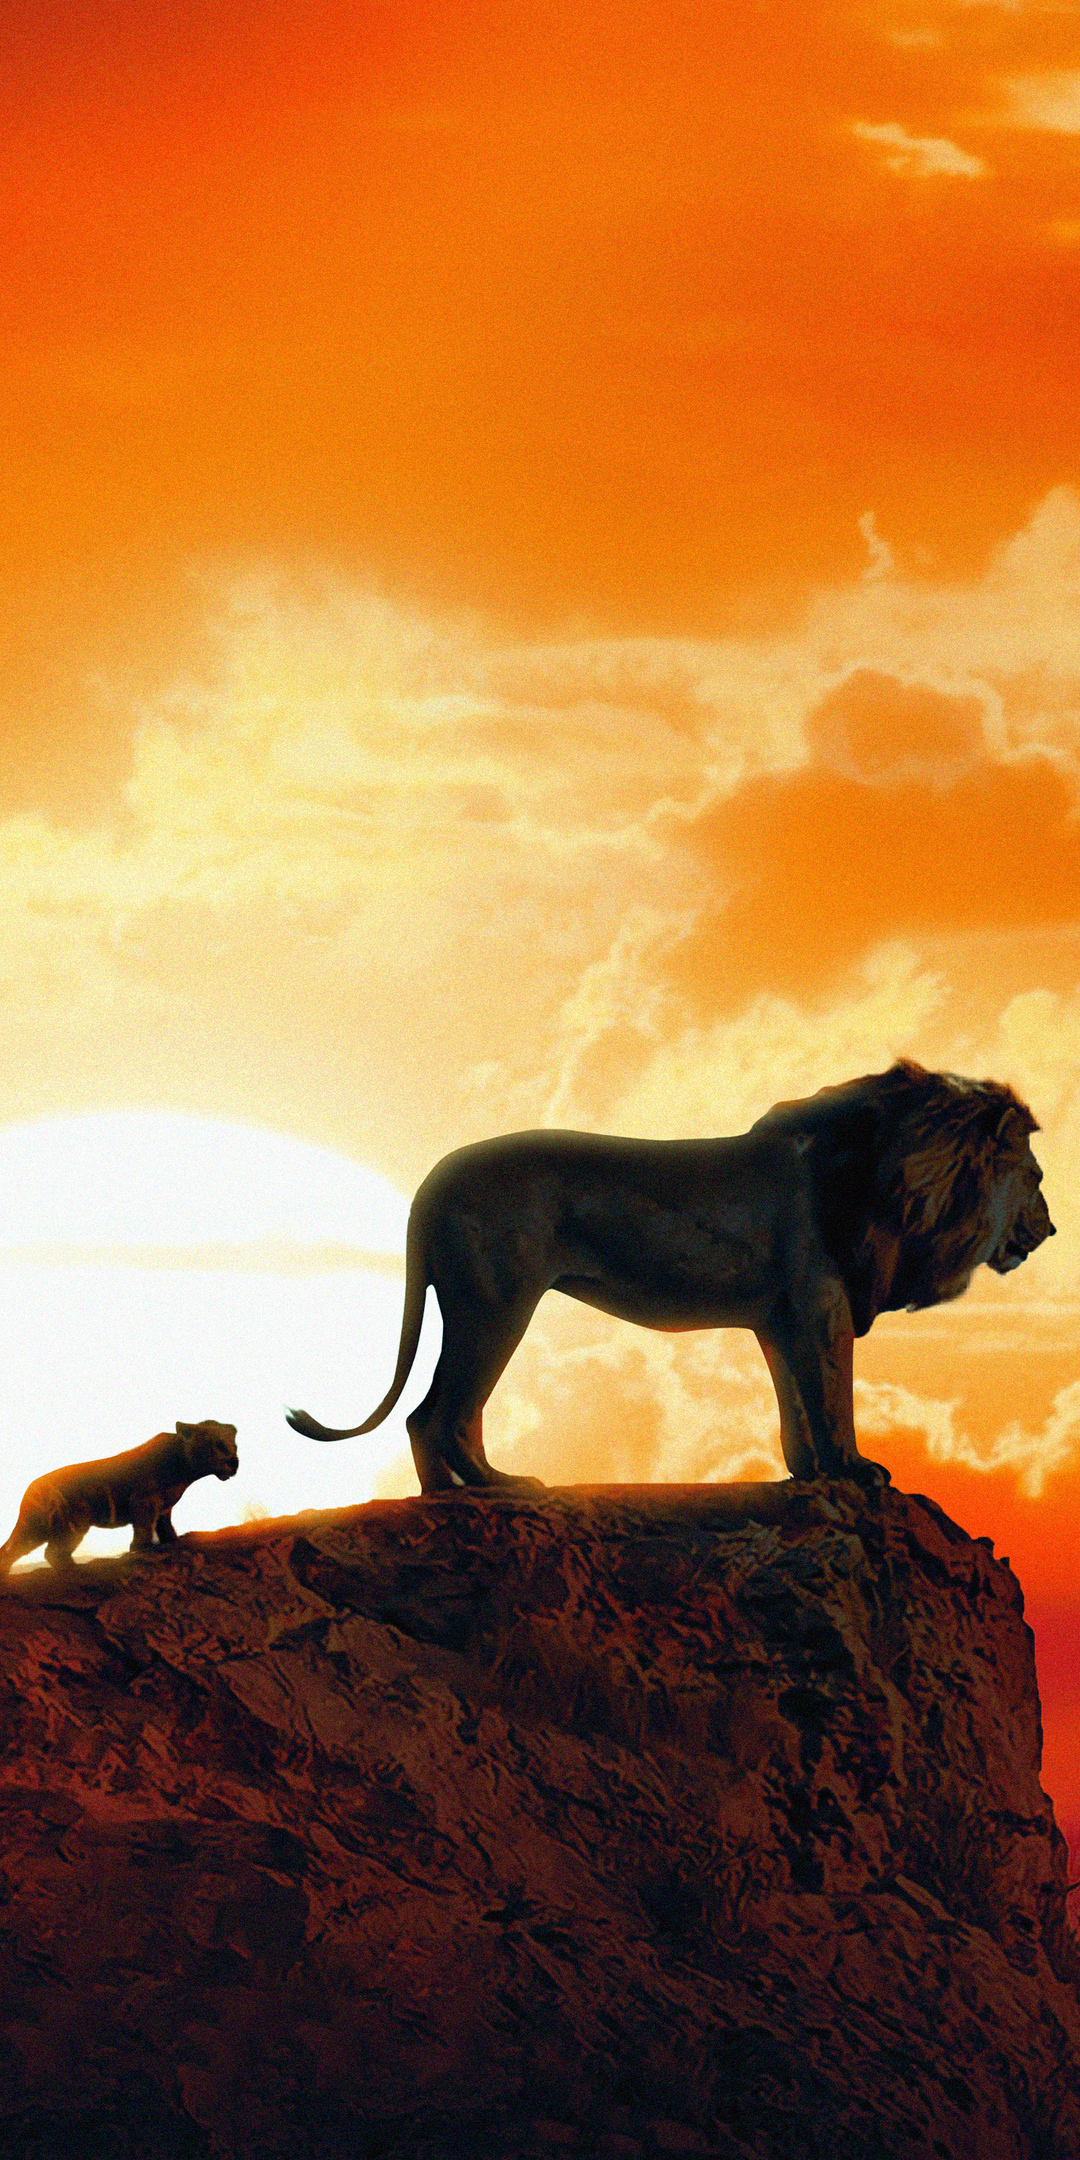 the-lion-king-new-poster-3f.jpg